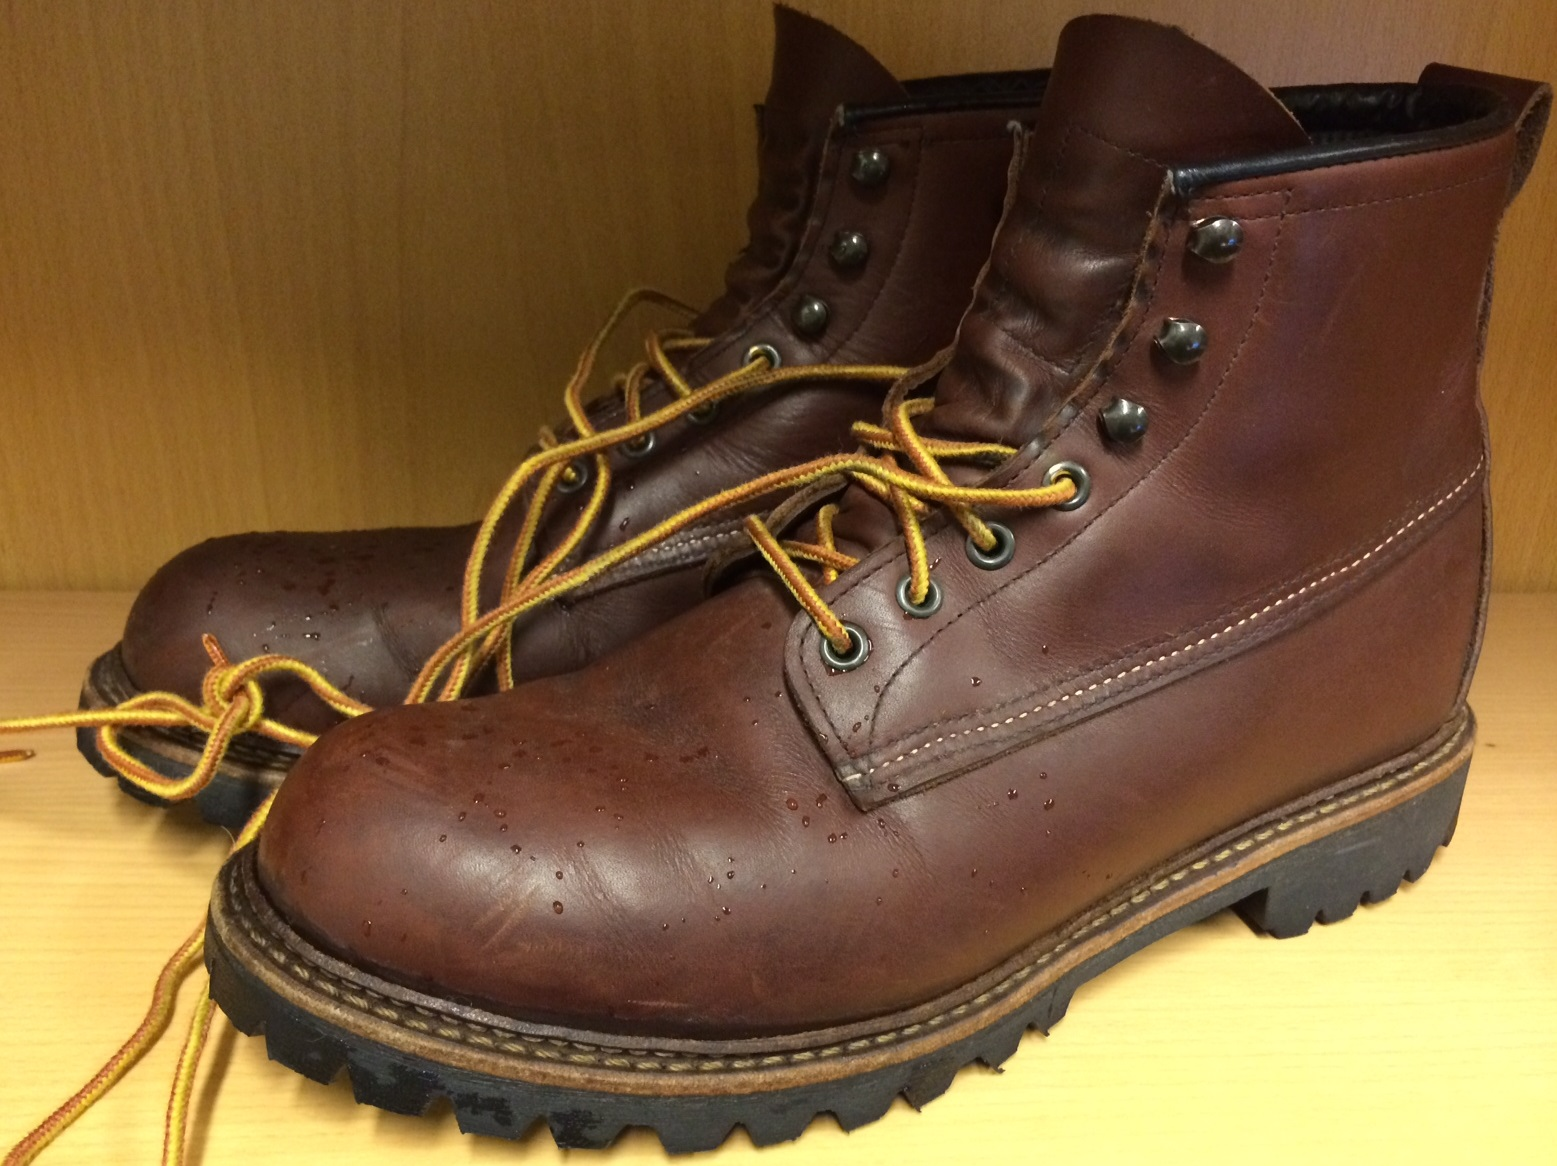 Red Wing Winter Boots sDUA06u8